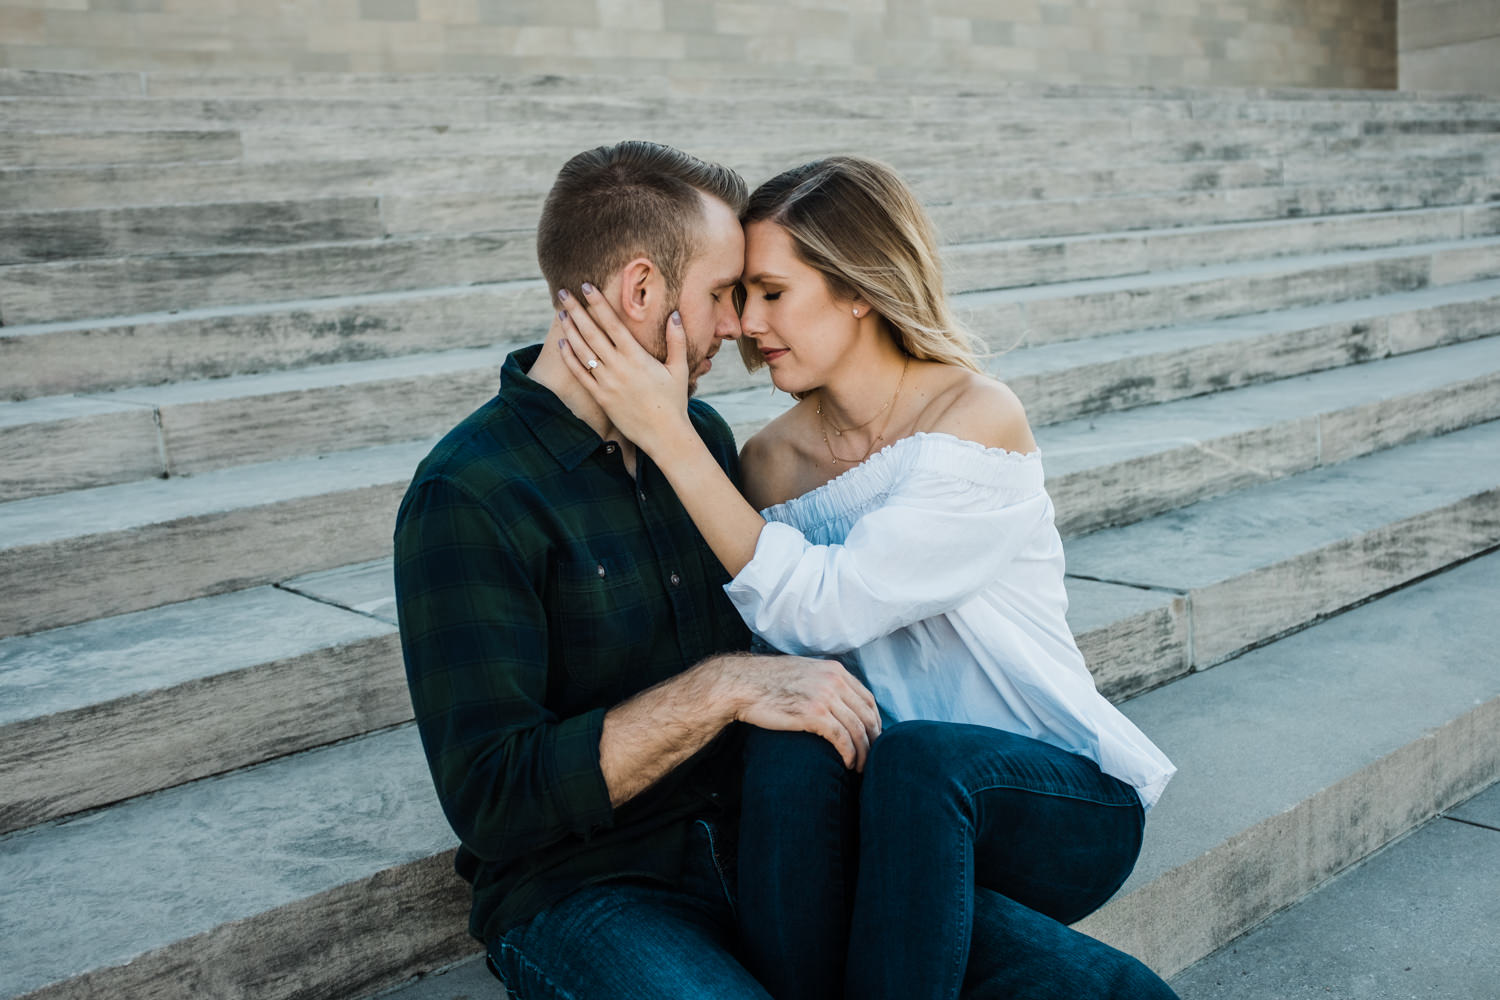 Kansas City Engagement Photographer-Neal Dieker-Kansas City, Kansas-Kansas City, Kansas-Neal Dieker Photography-150.jpg